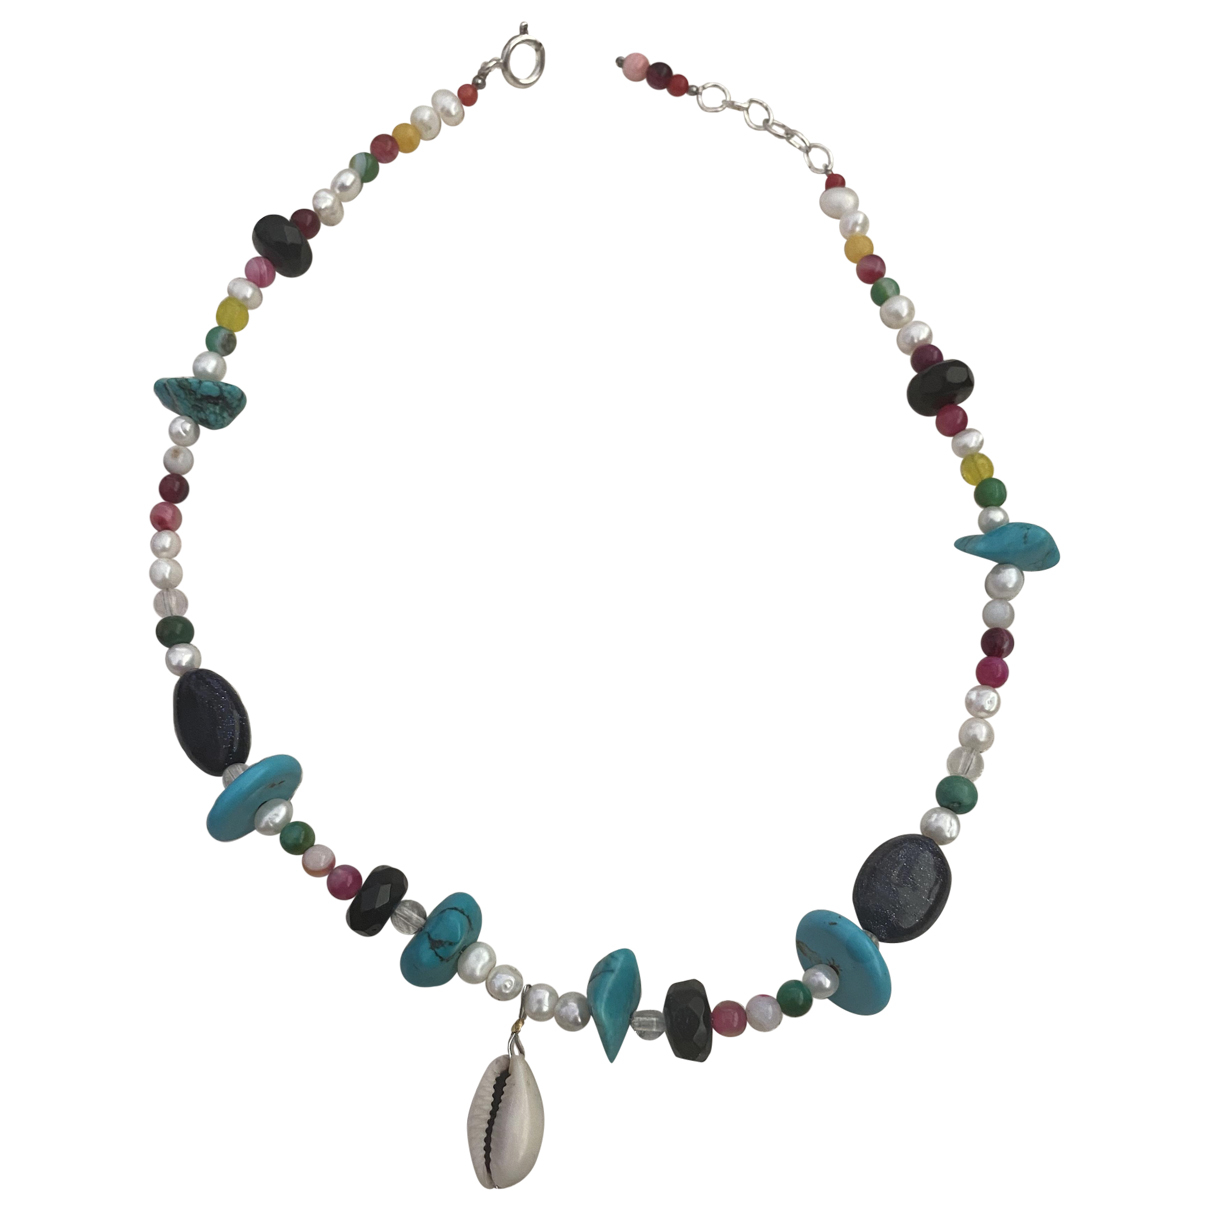 Non Signe / Unsigned Motifs Coquillages Kette in  Bunt Silber